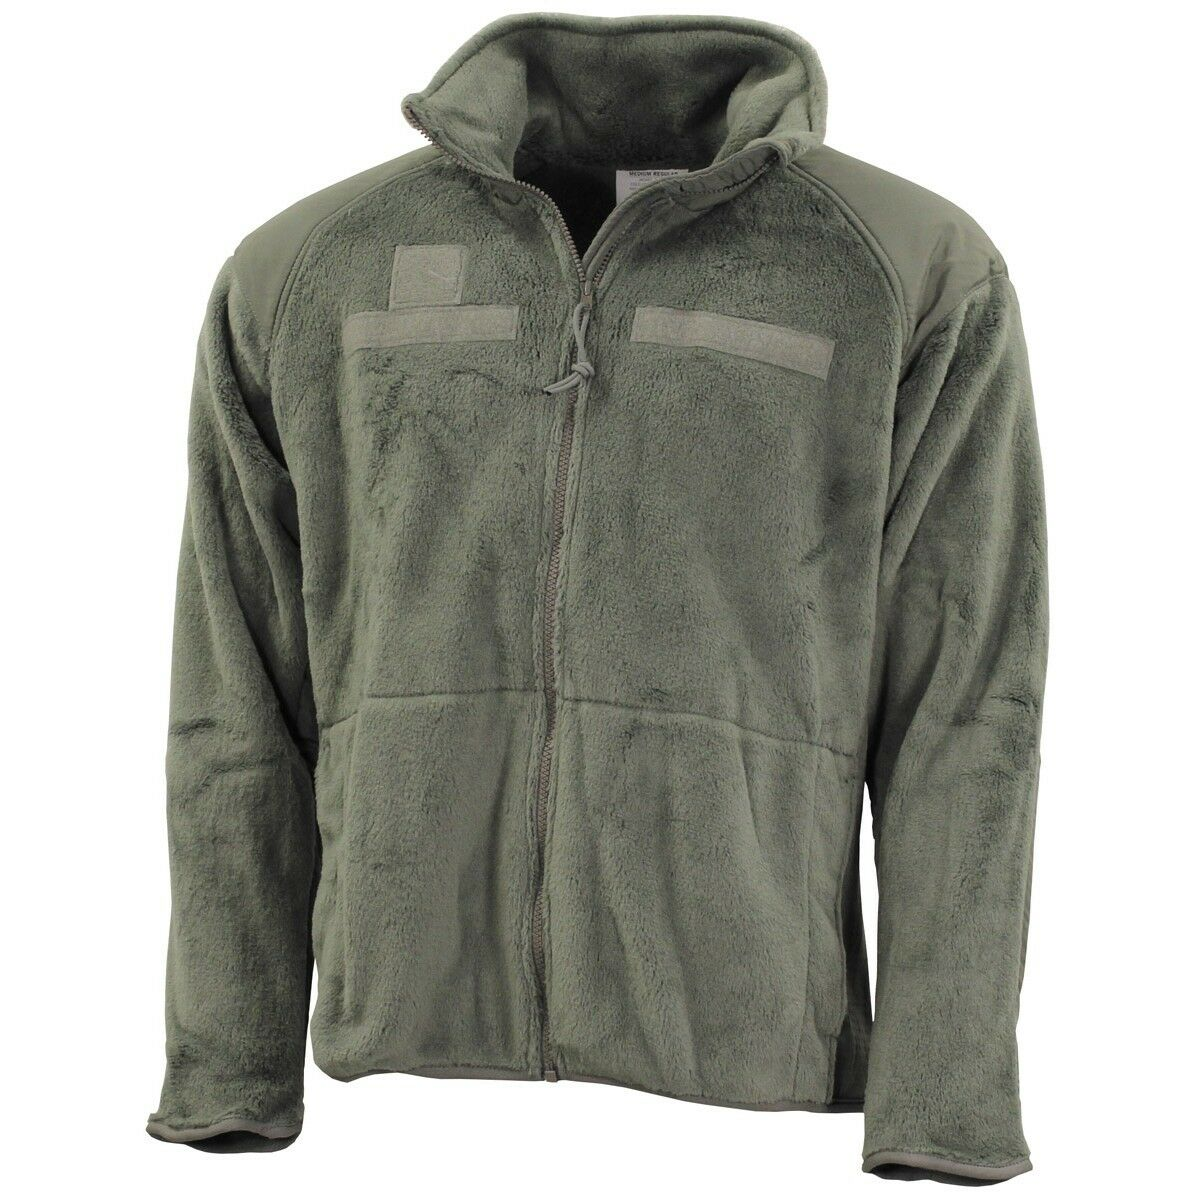 US Army Gen Gen Army III Level 3 Polartec in pile Giacca UCP FOLIAGE verde MR MEDIUM REGULAR 11aa48